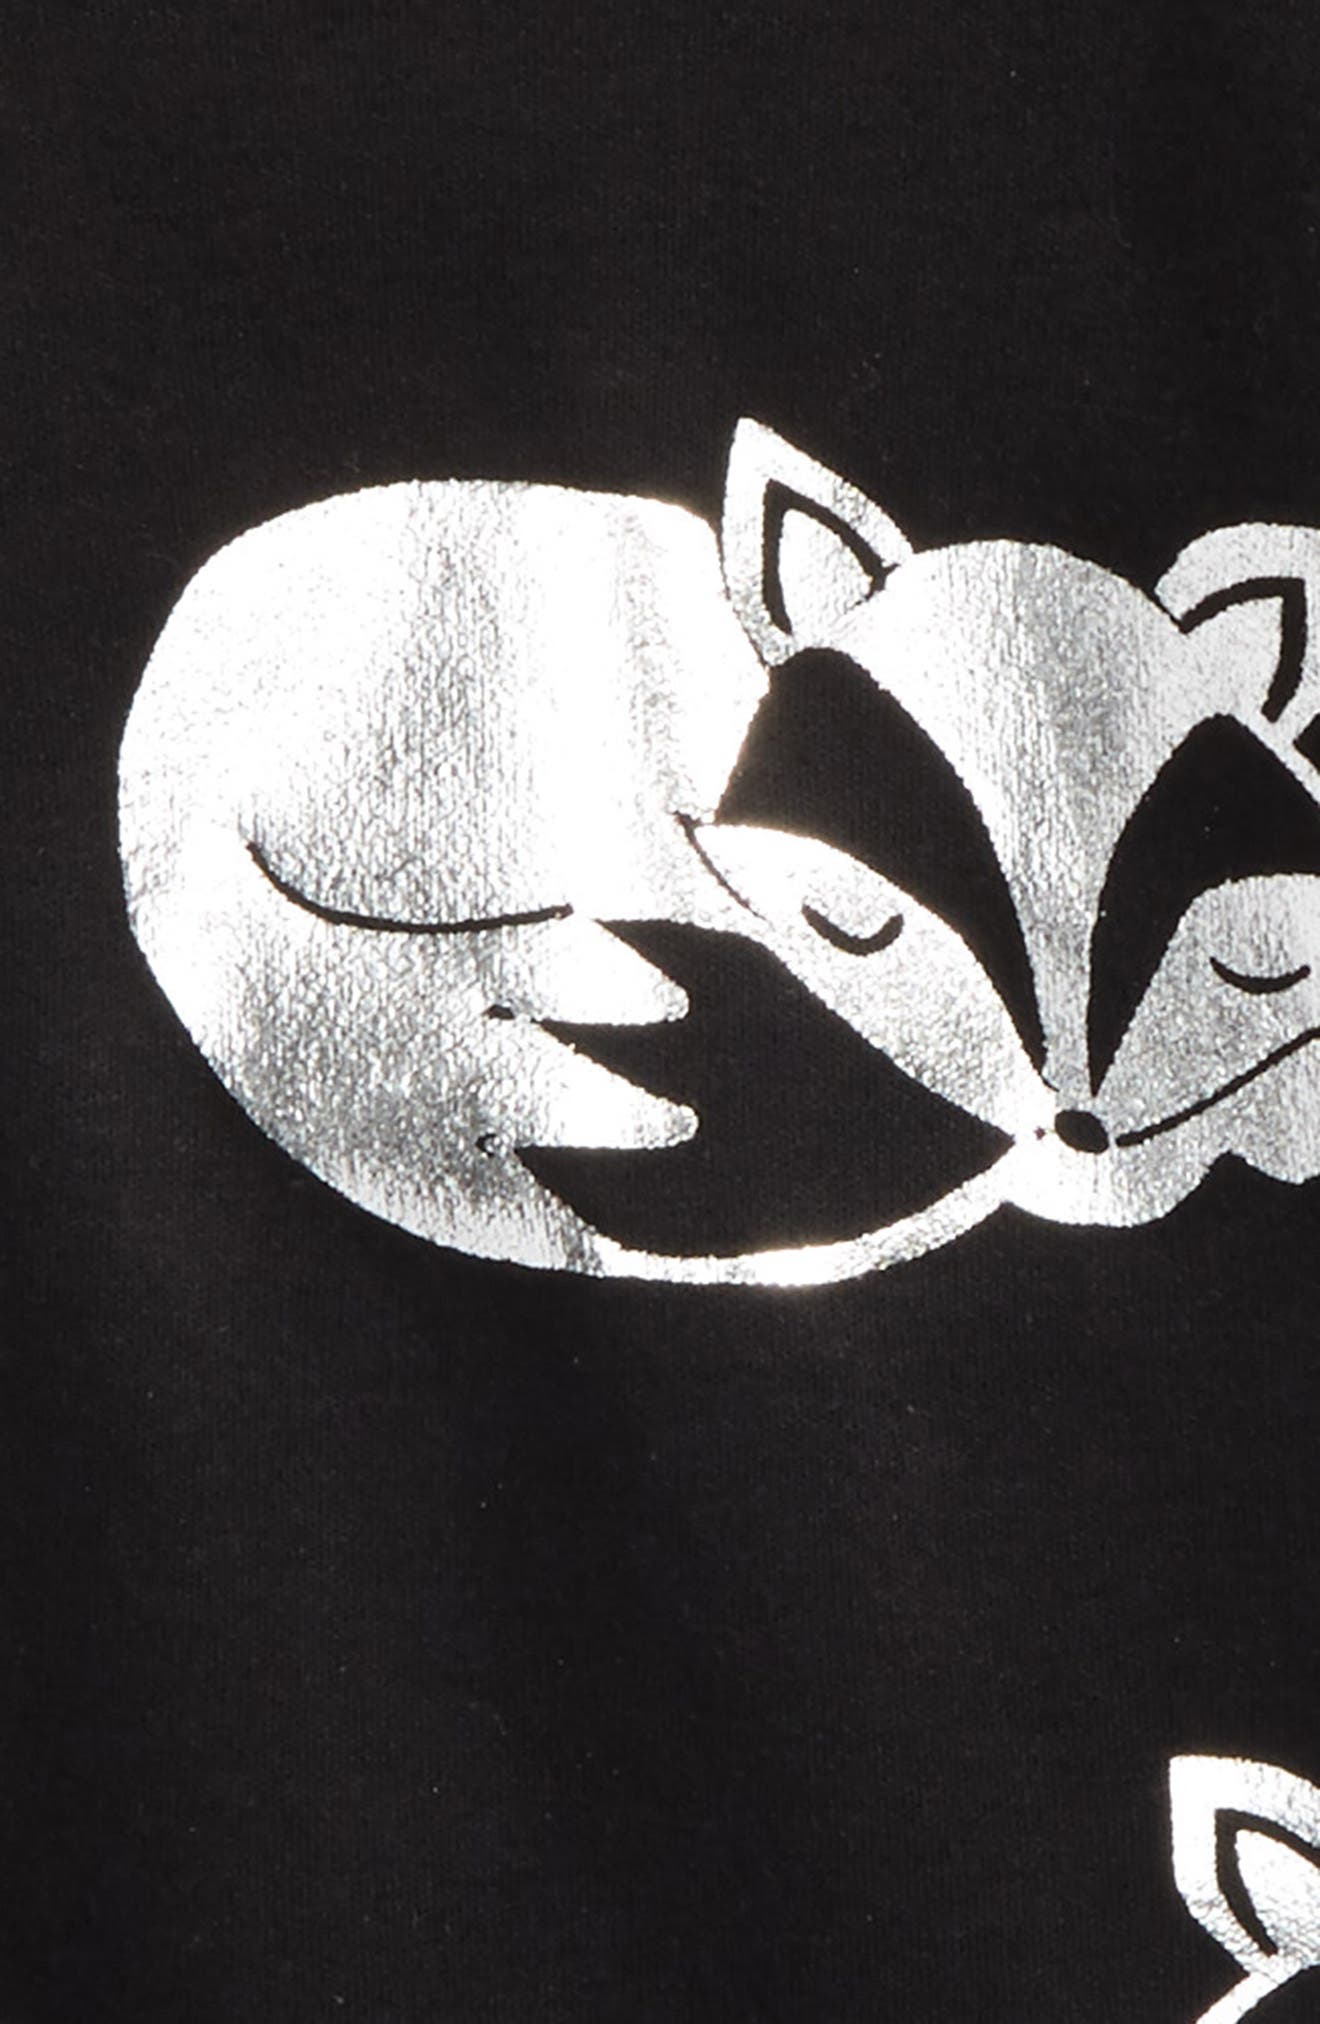 Sleeping Foxes Fitted Two-Piece Pajamas,                             Alternate thumbnail 3, color,                             001